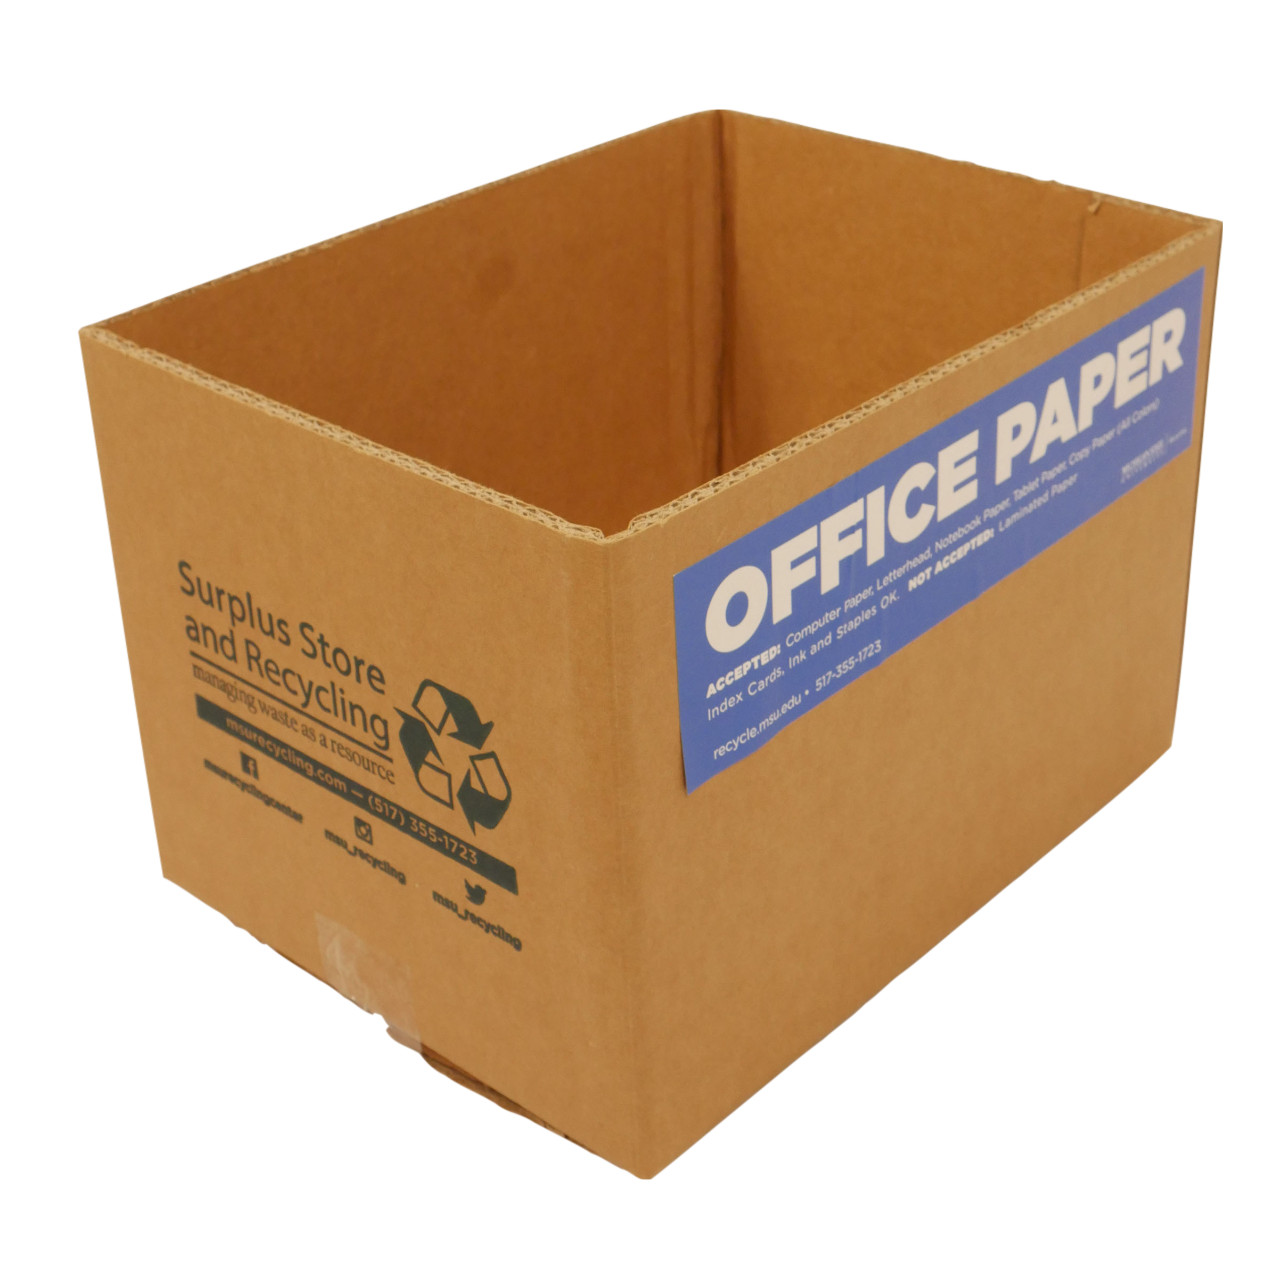 Personal Paper Recycling Box